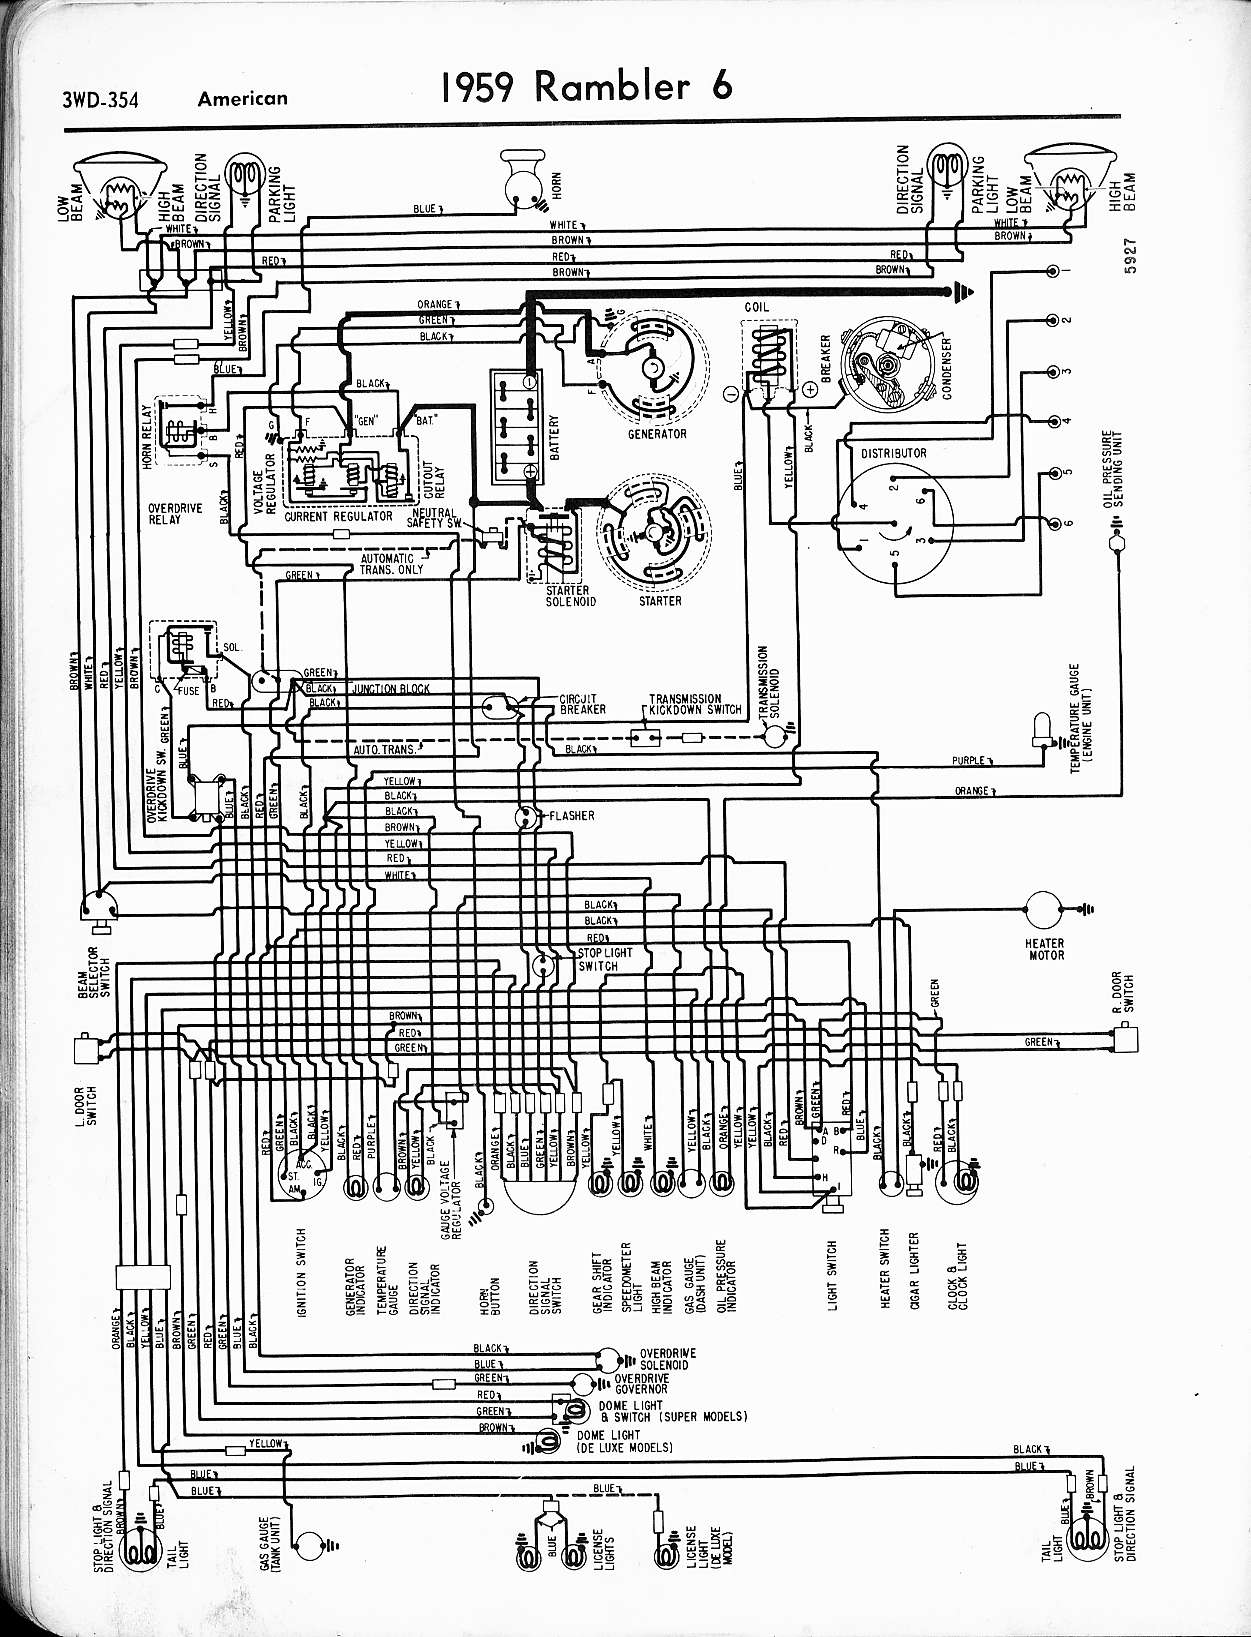 Amc Pacer Wiring Diagram - Fl70 Fuse Box for Wiring Diagram SchematicsWiring Diagram Schematics